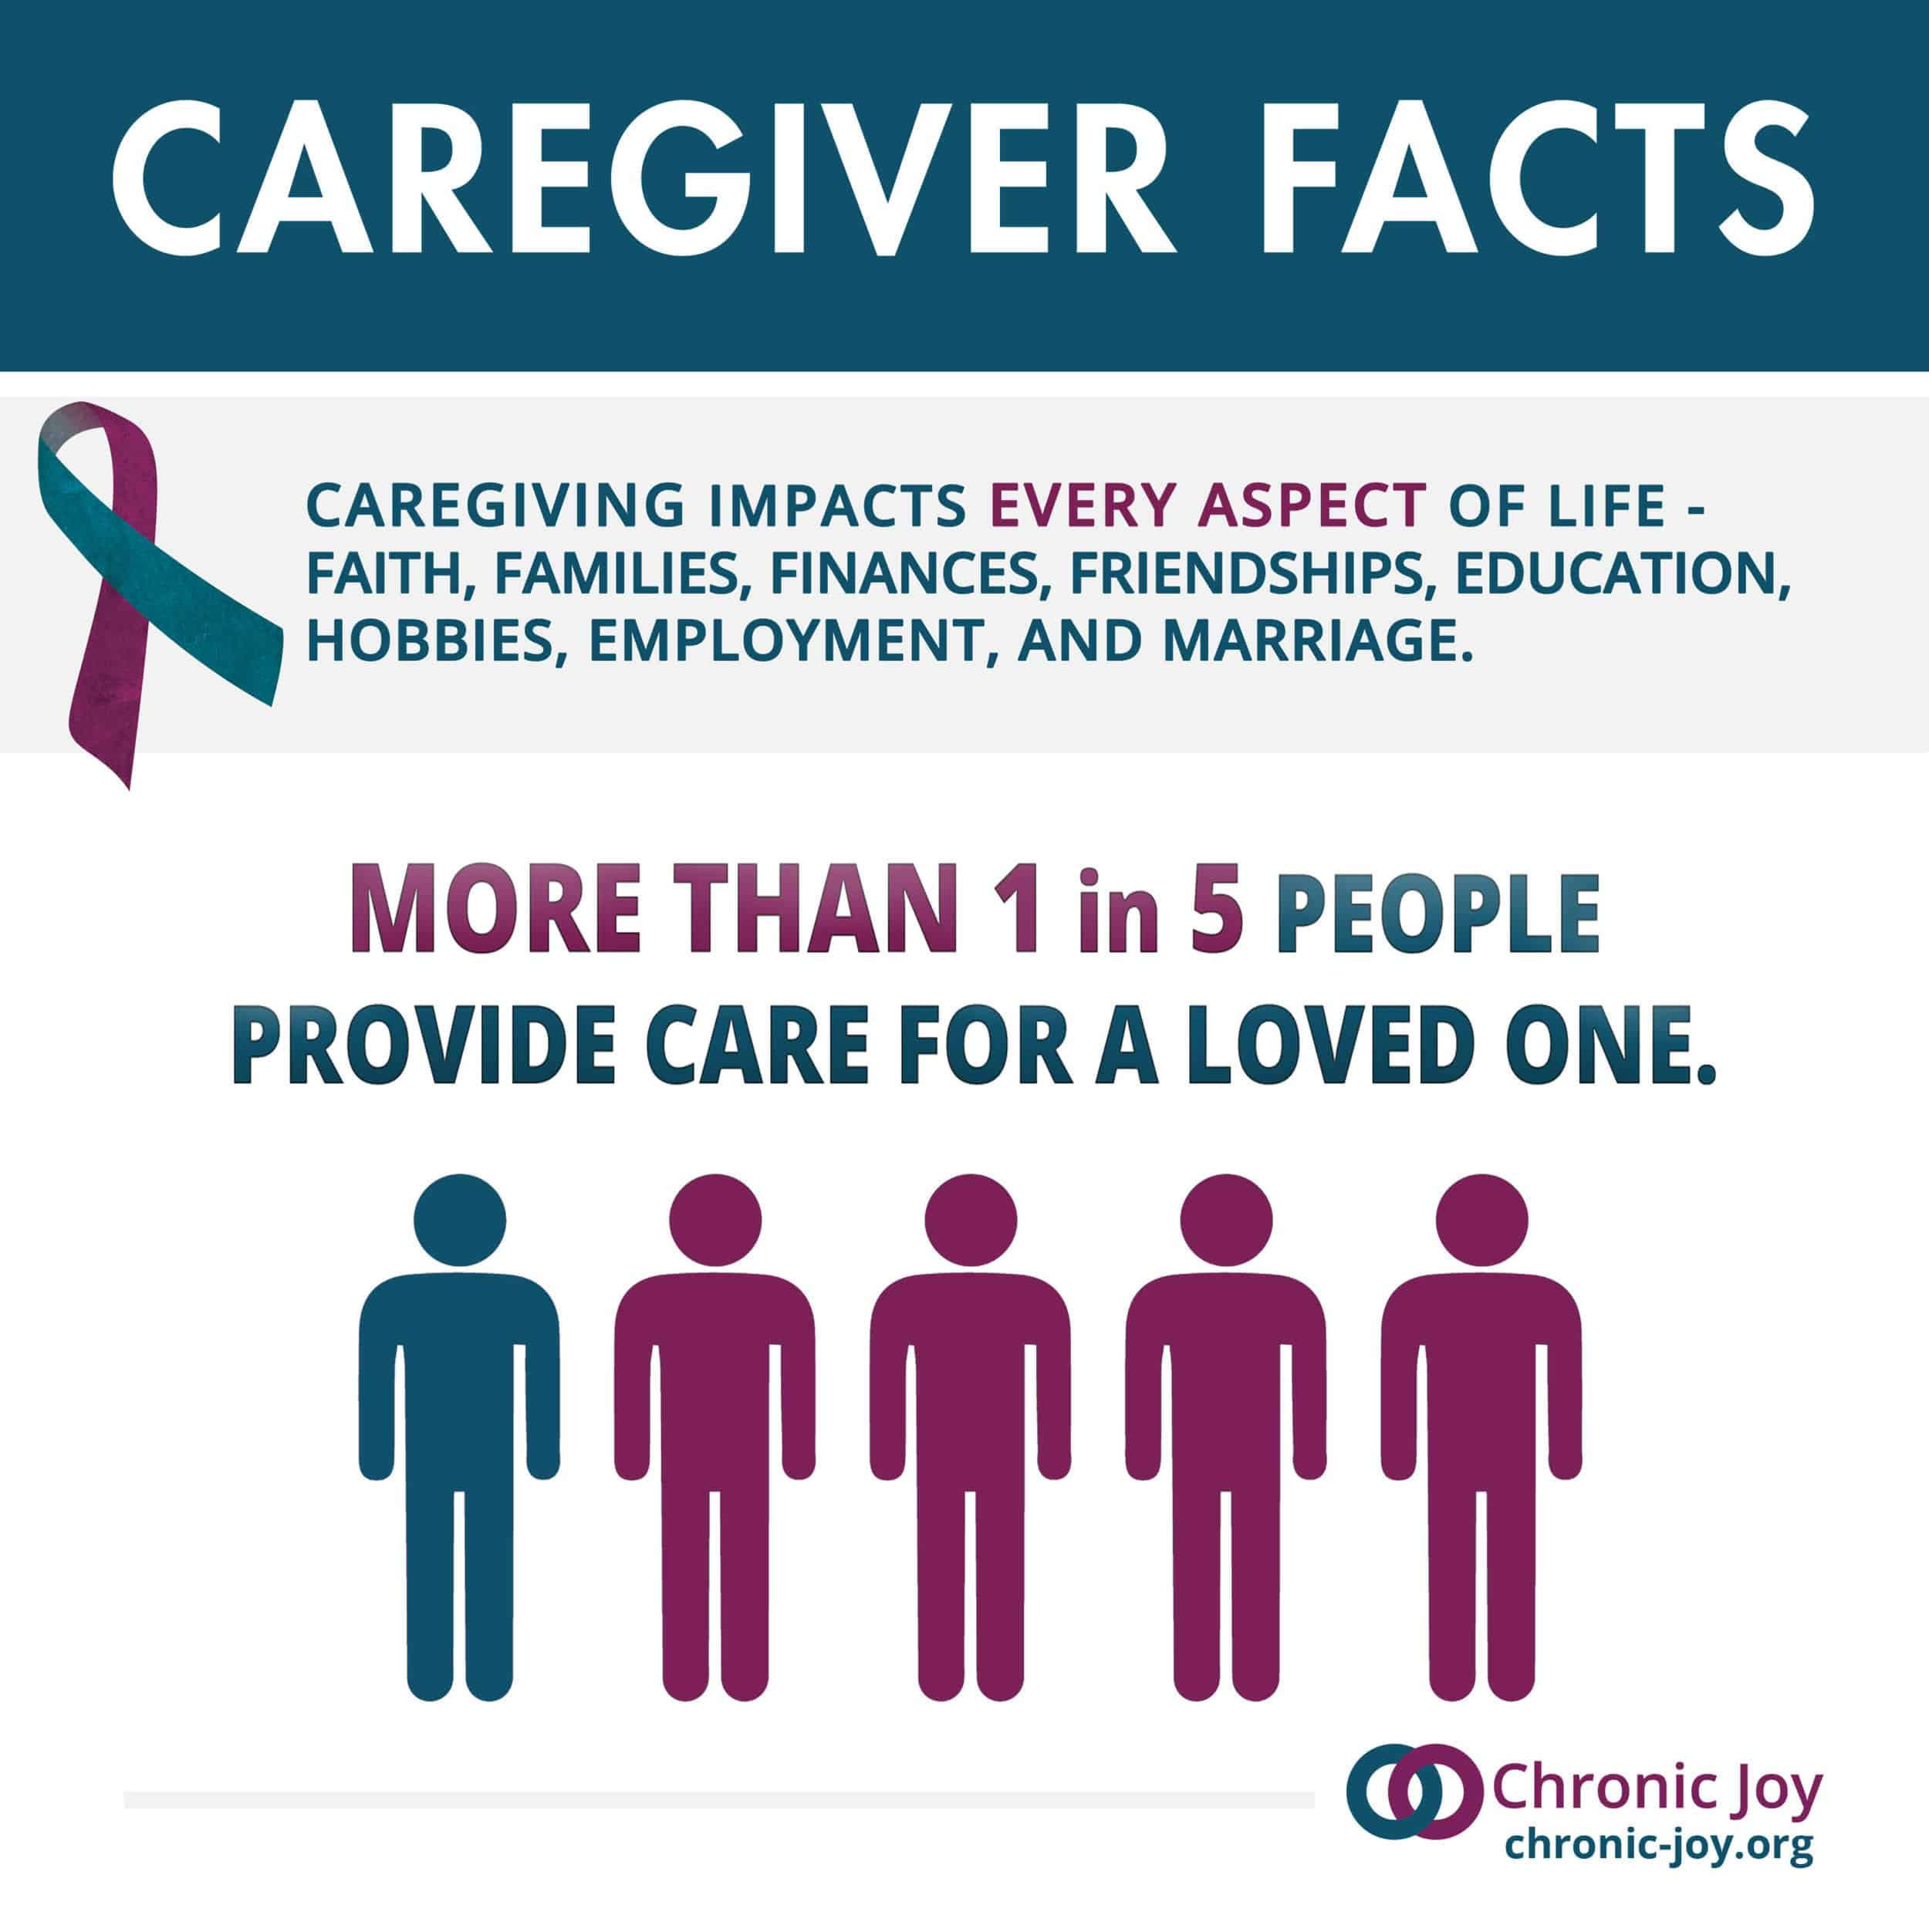 More than 1 in 5 people care for a loved one.